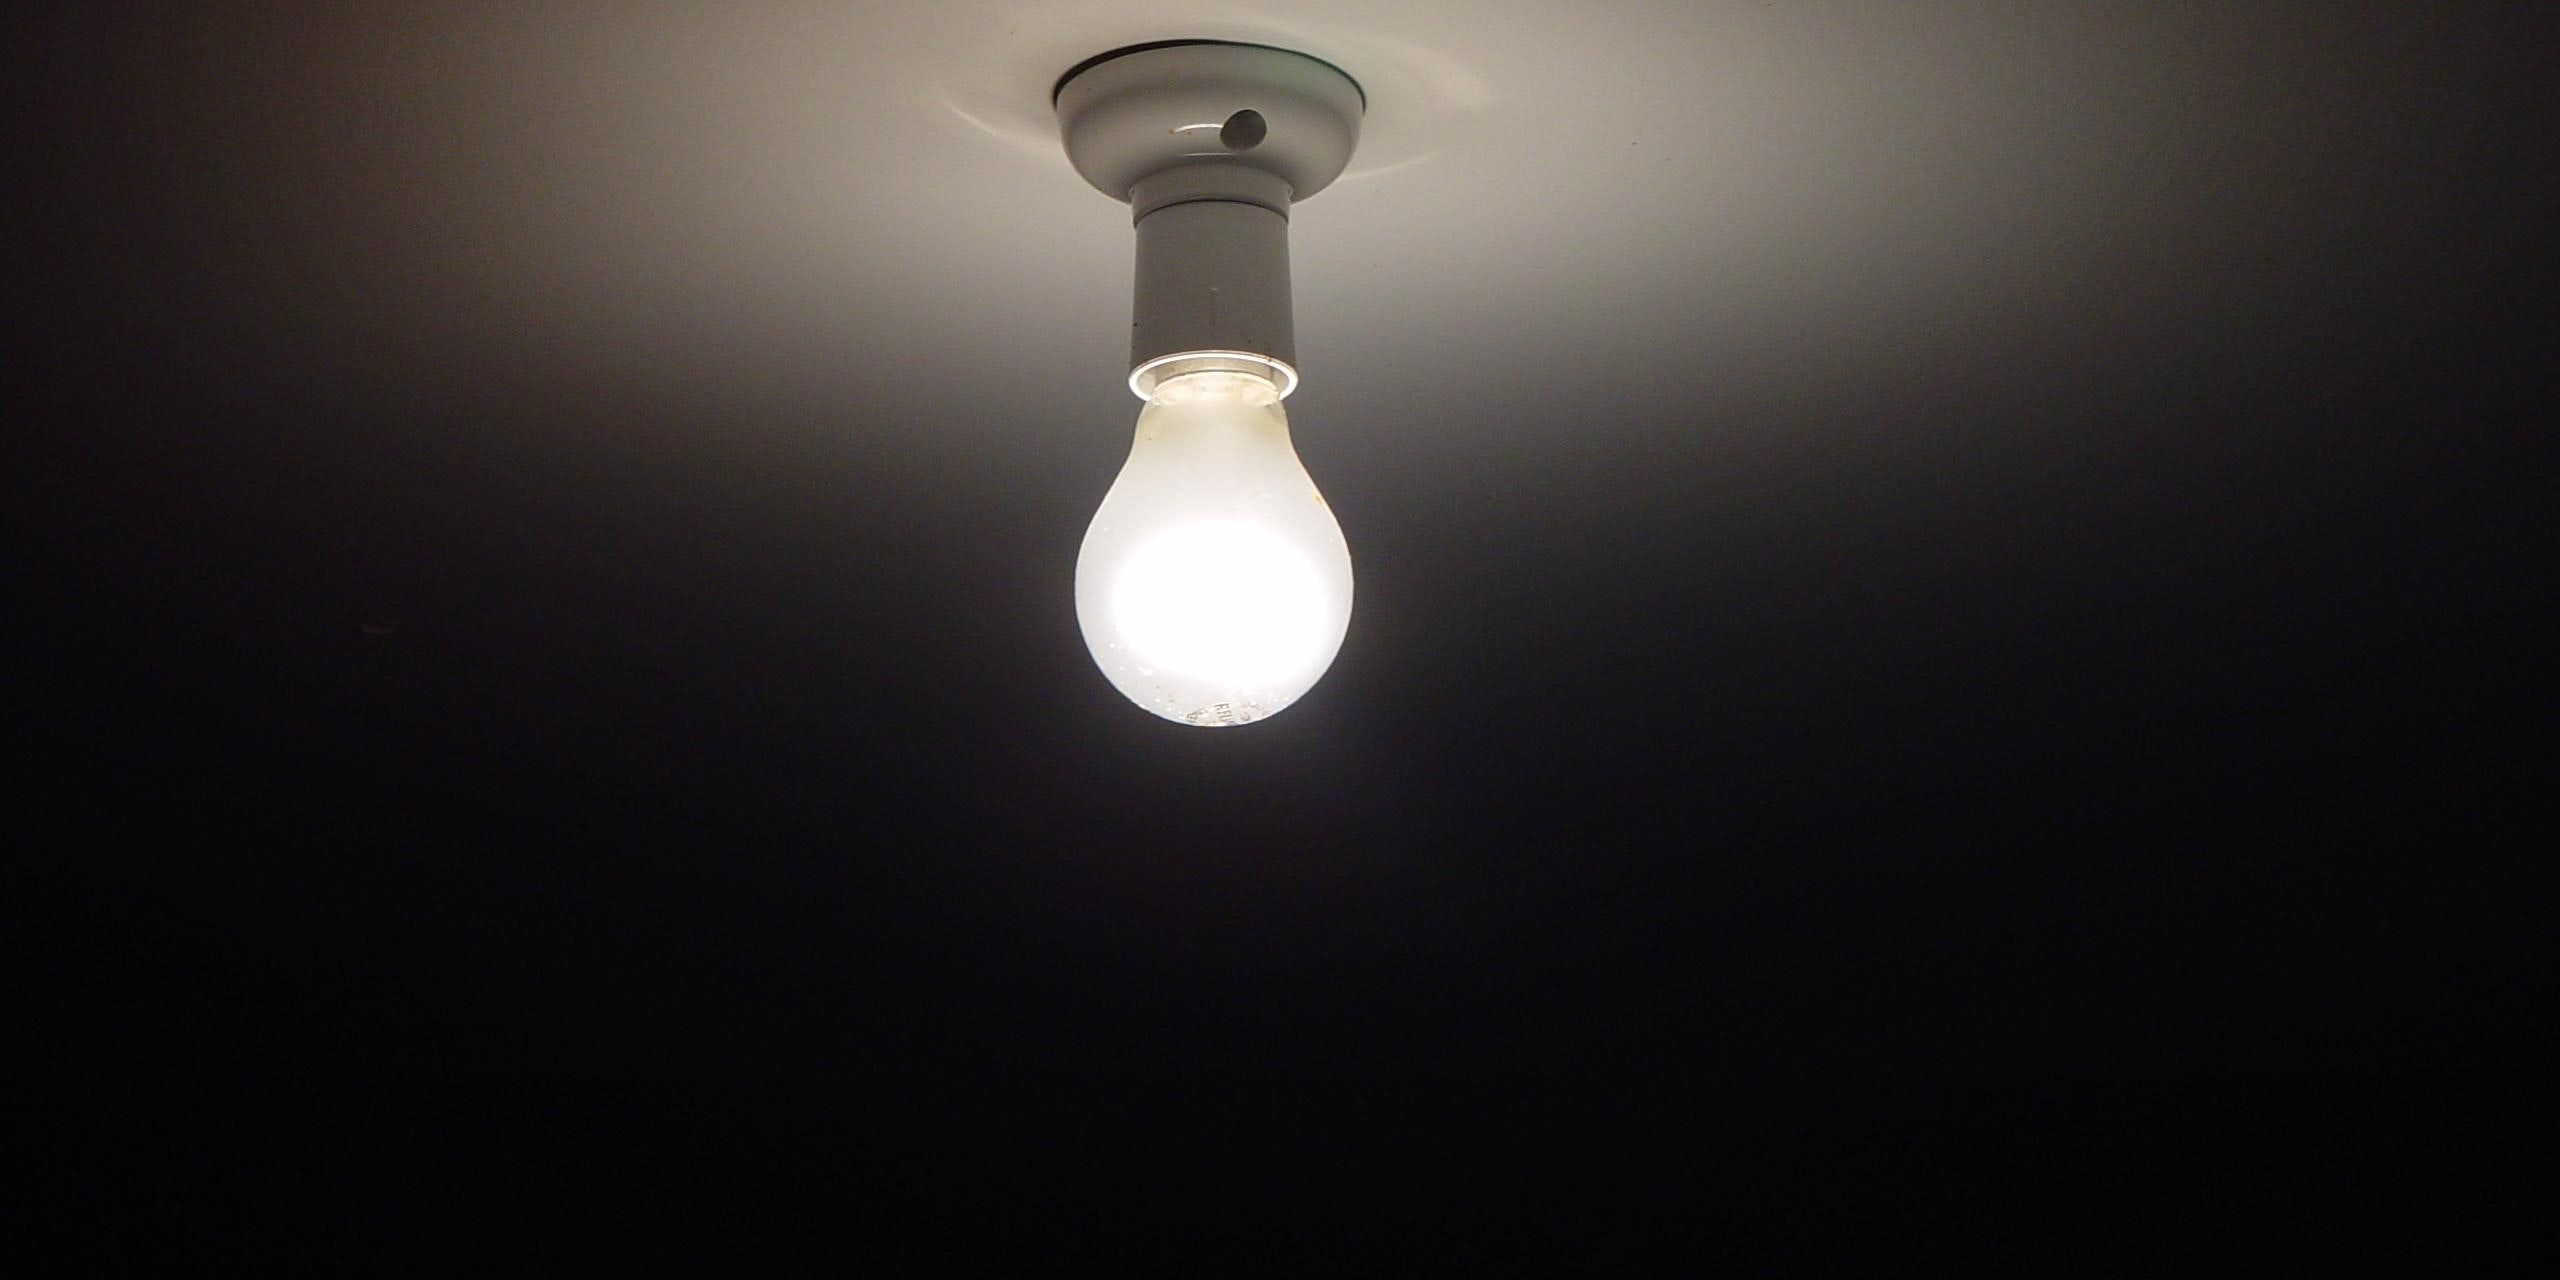 Genius light bulb